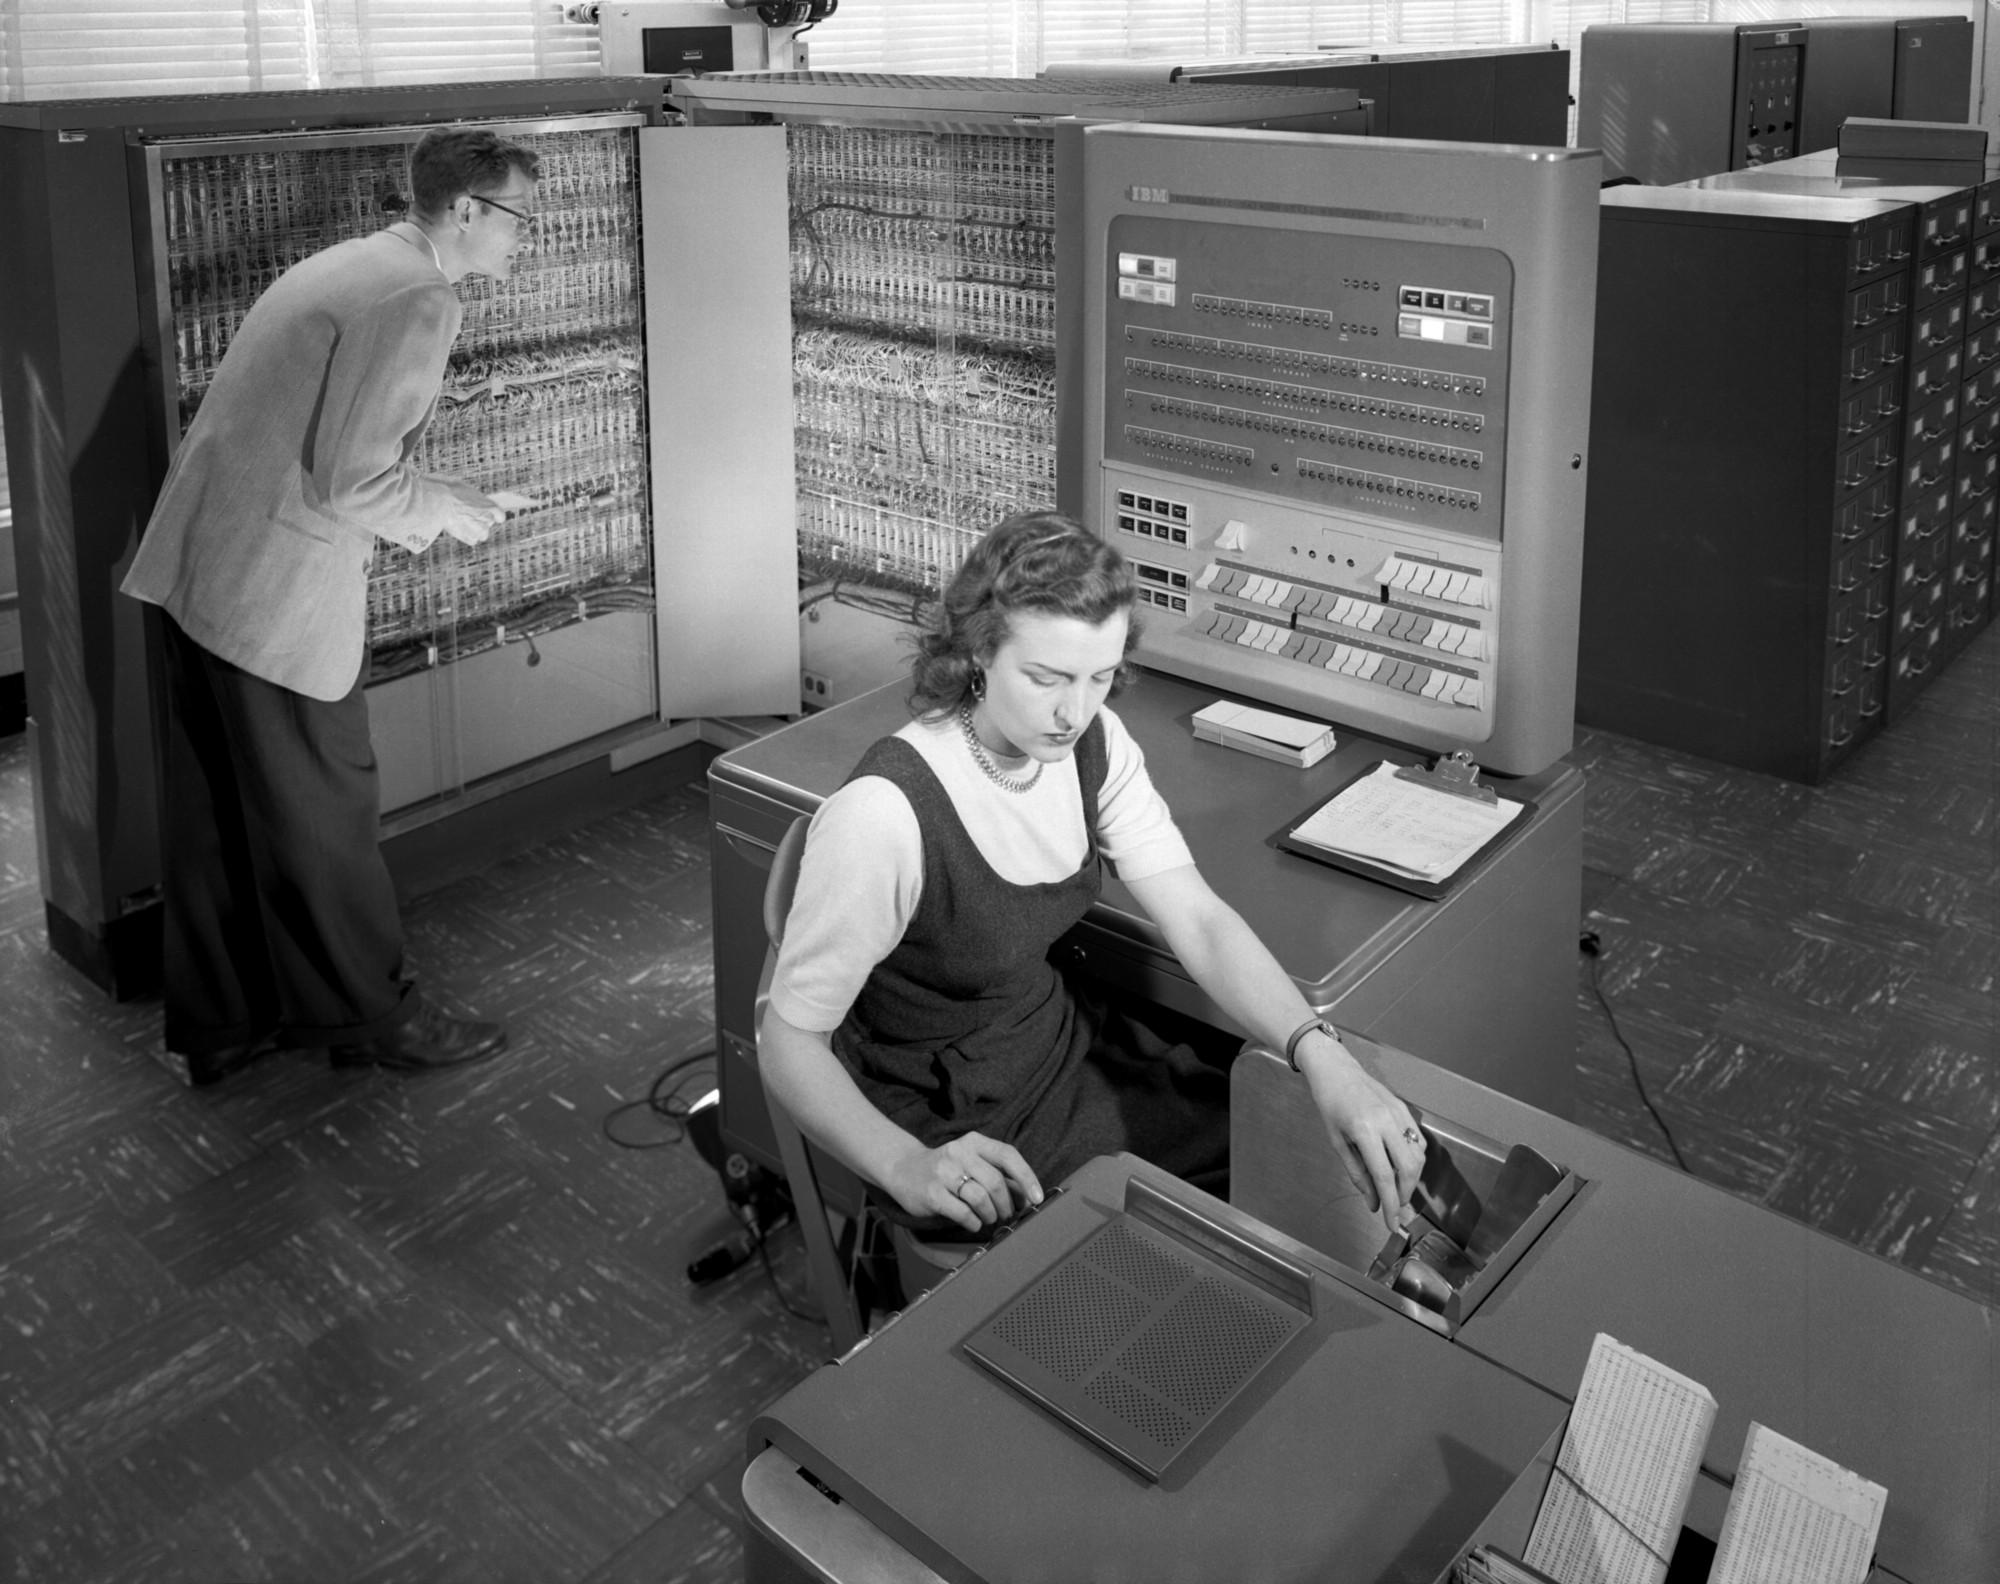 Man and woman working with IBM type 704 electronic data processing machine.